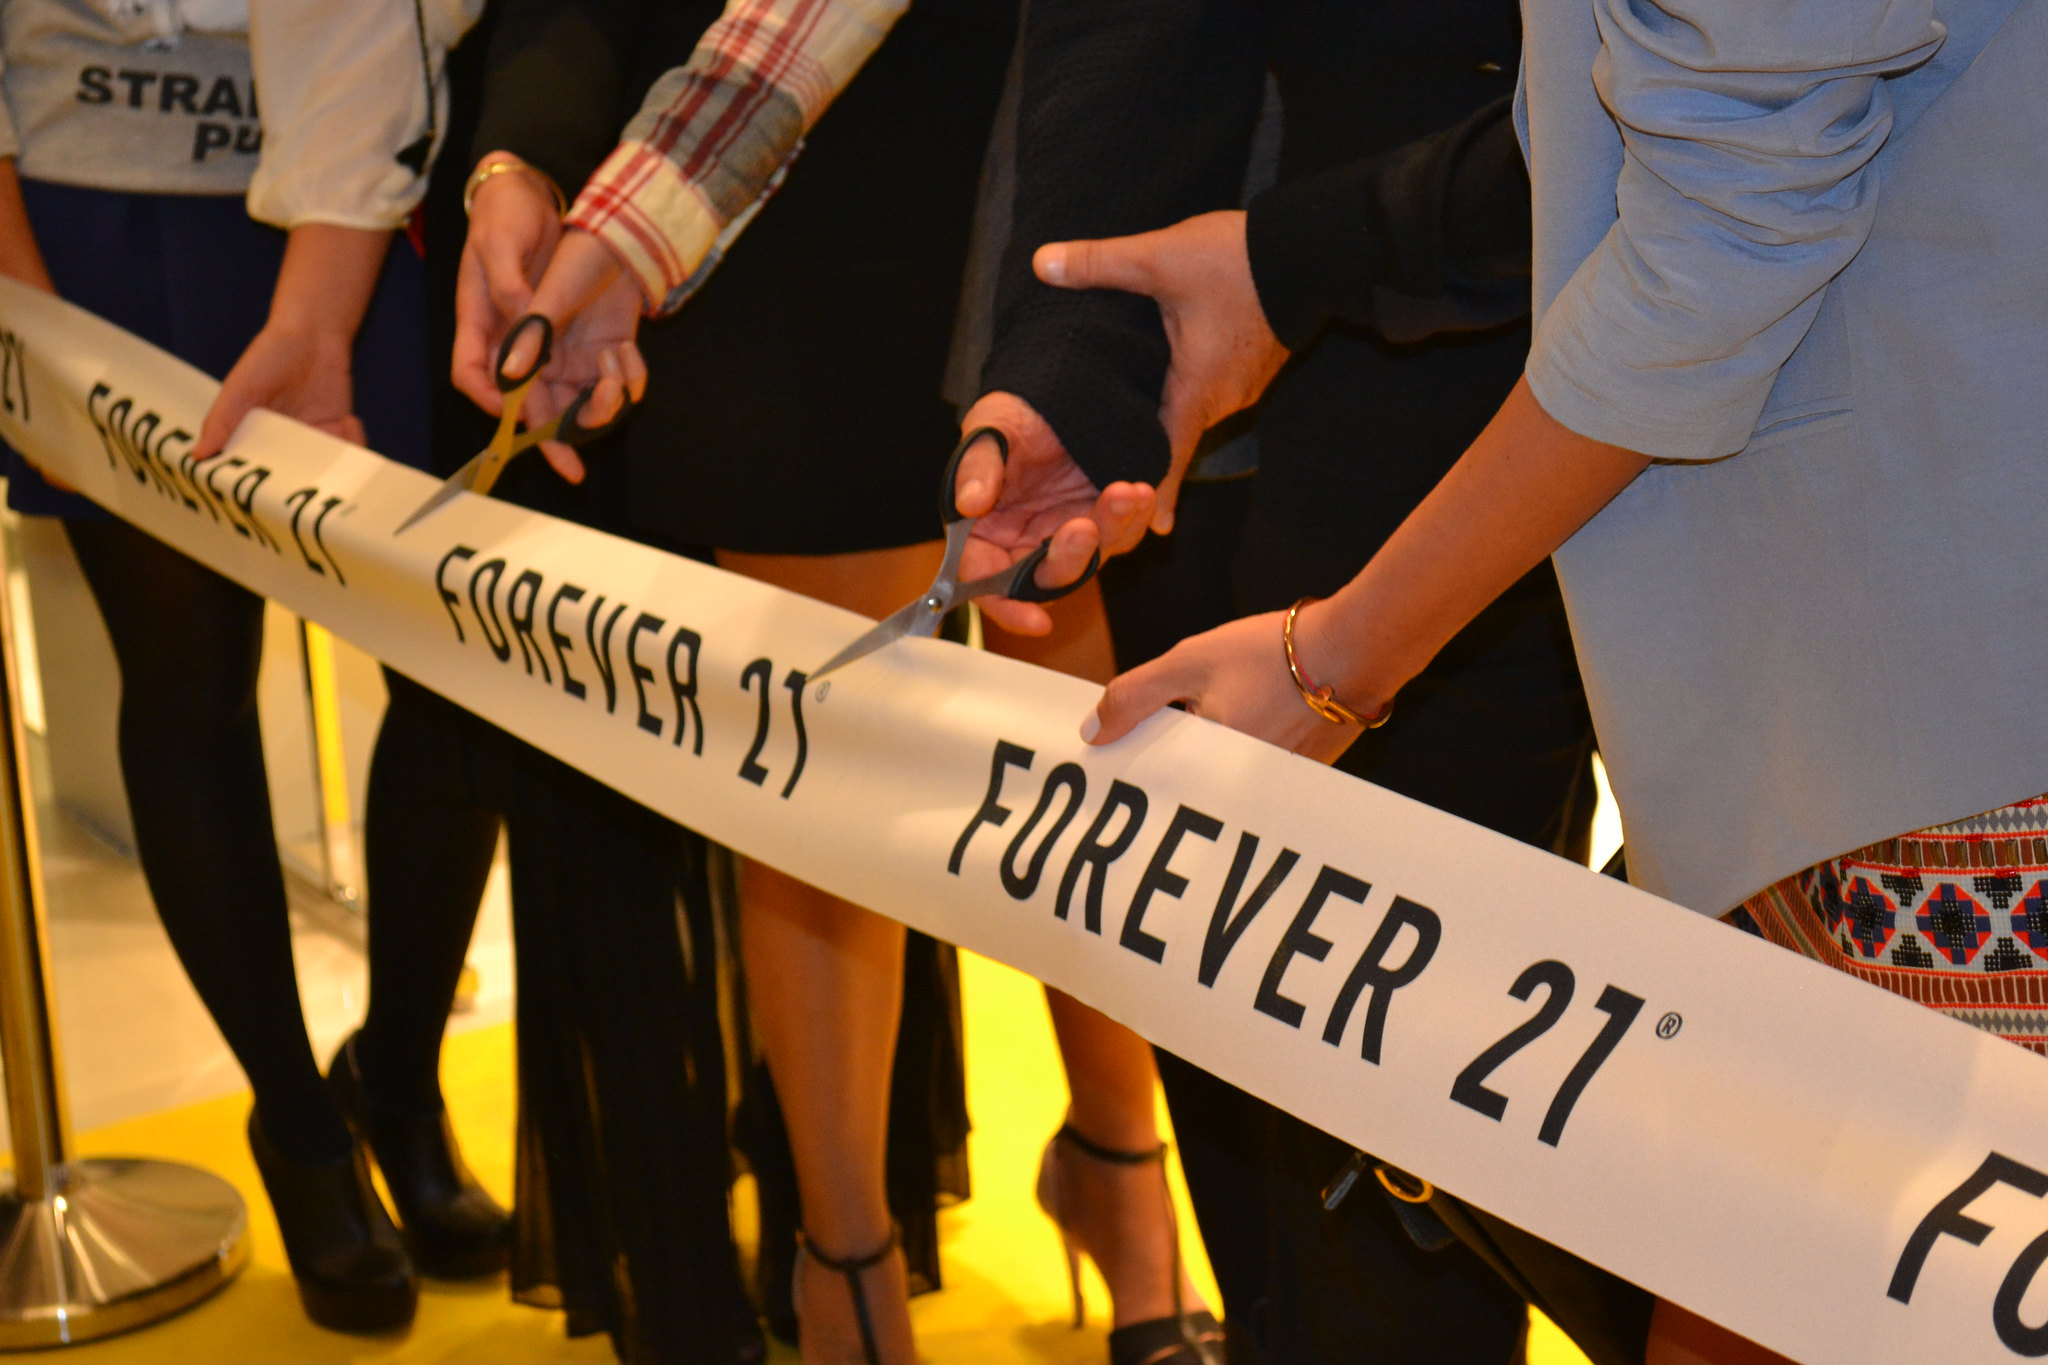 Forever21 Grand Canyon – The Event